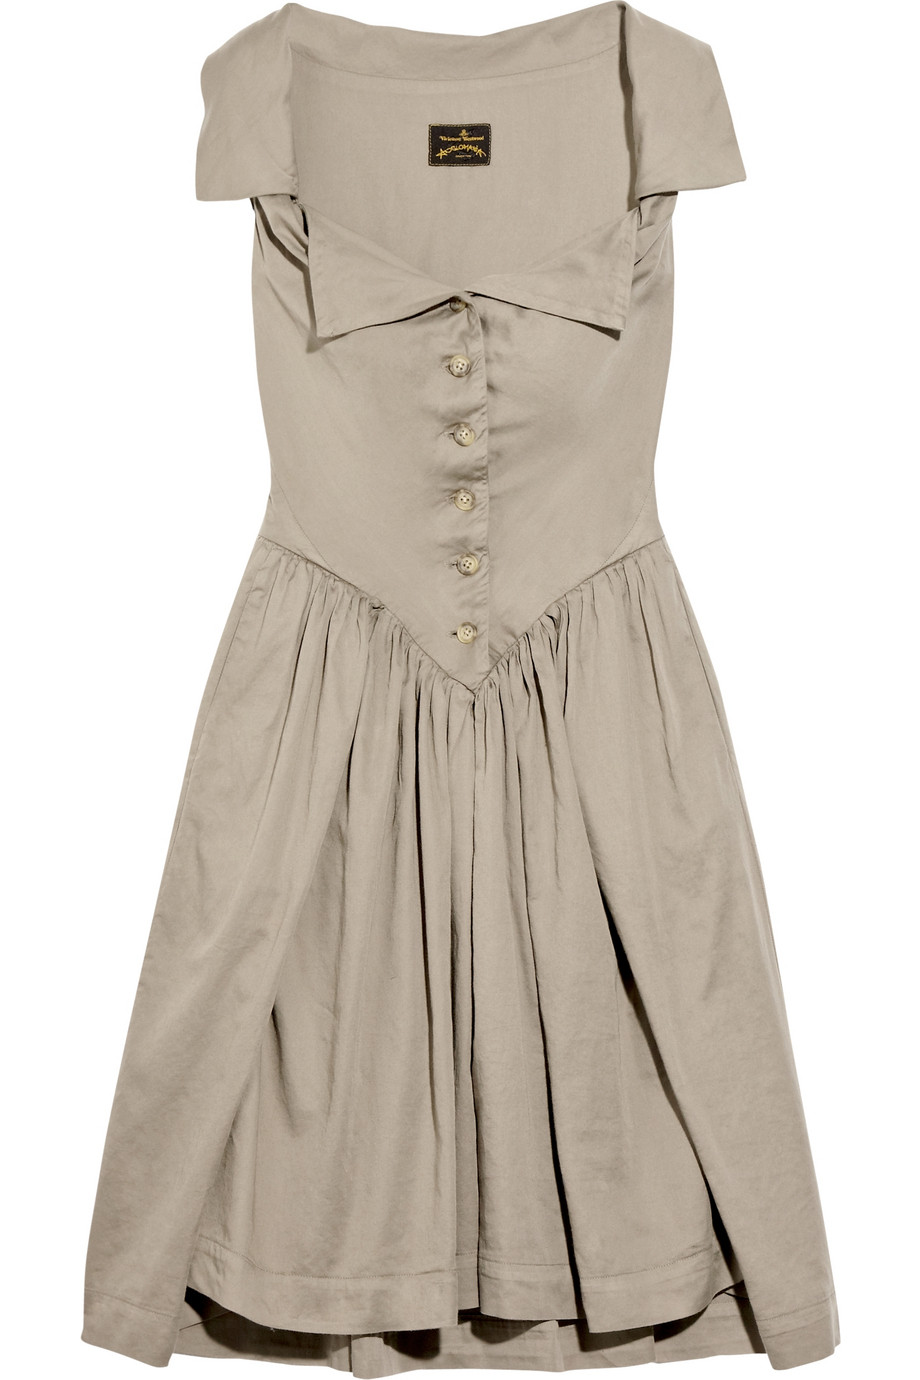 4a3e817f3d47 Lyst - Vivienne Westwood Anglomania Monday Cotton Dress in Brown